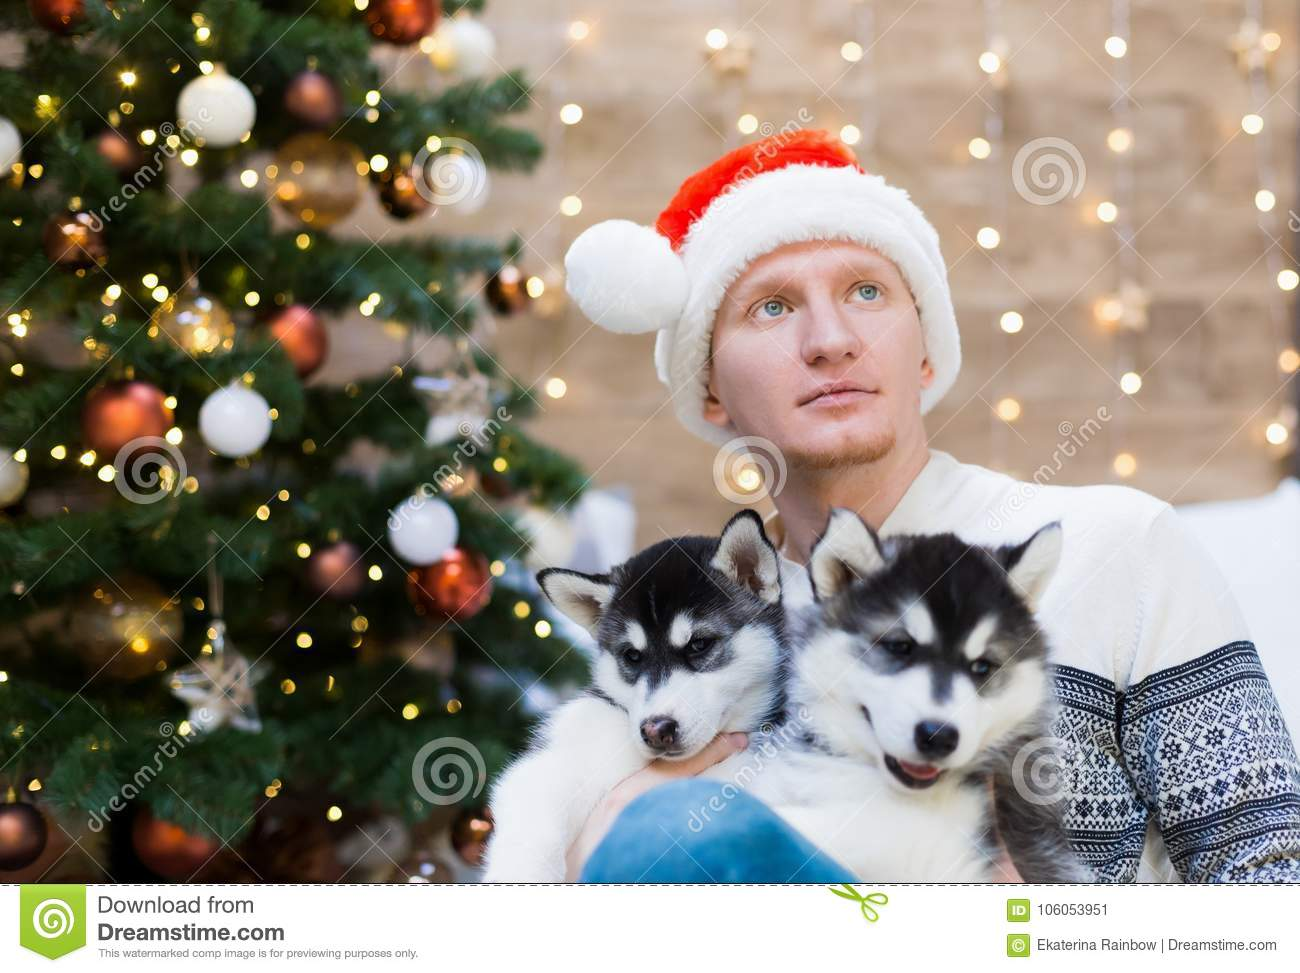 35bc6dc3d83f0 ... amazing background Christmas lights. New Year holiday card calendar.  Winter family home. Beautiful animals life. Couple friends Santa Claus.